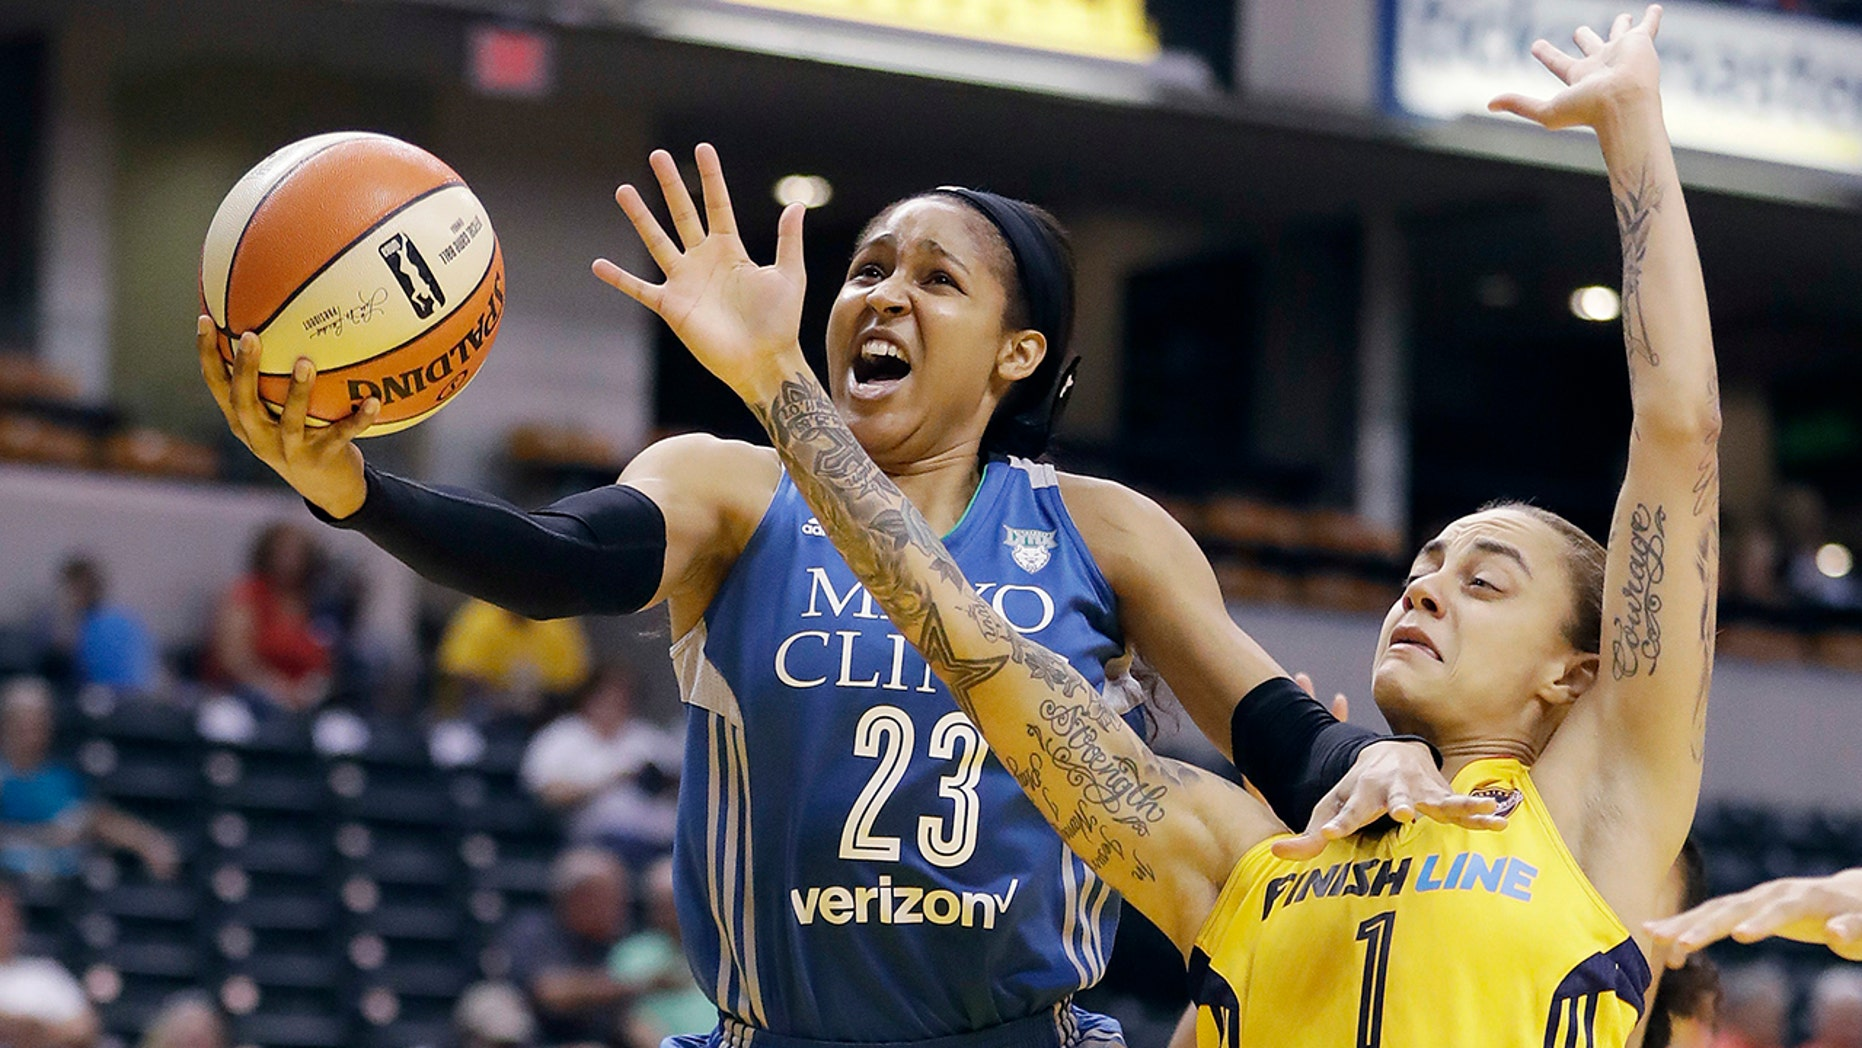 Minnesota Lynx's Maya Moore, left, shoots against Indiana Fever's Jazmon Gwathmey during the first half of a WNBA basketball game in Indianapolis.